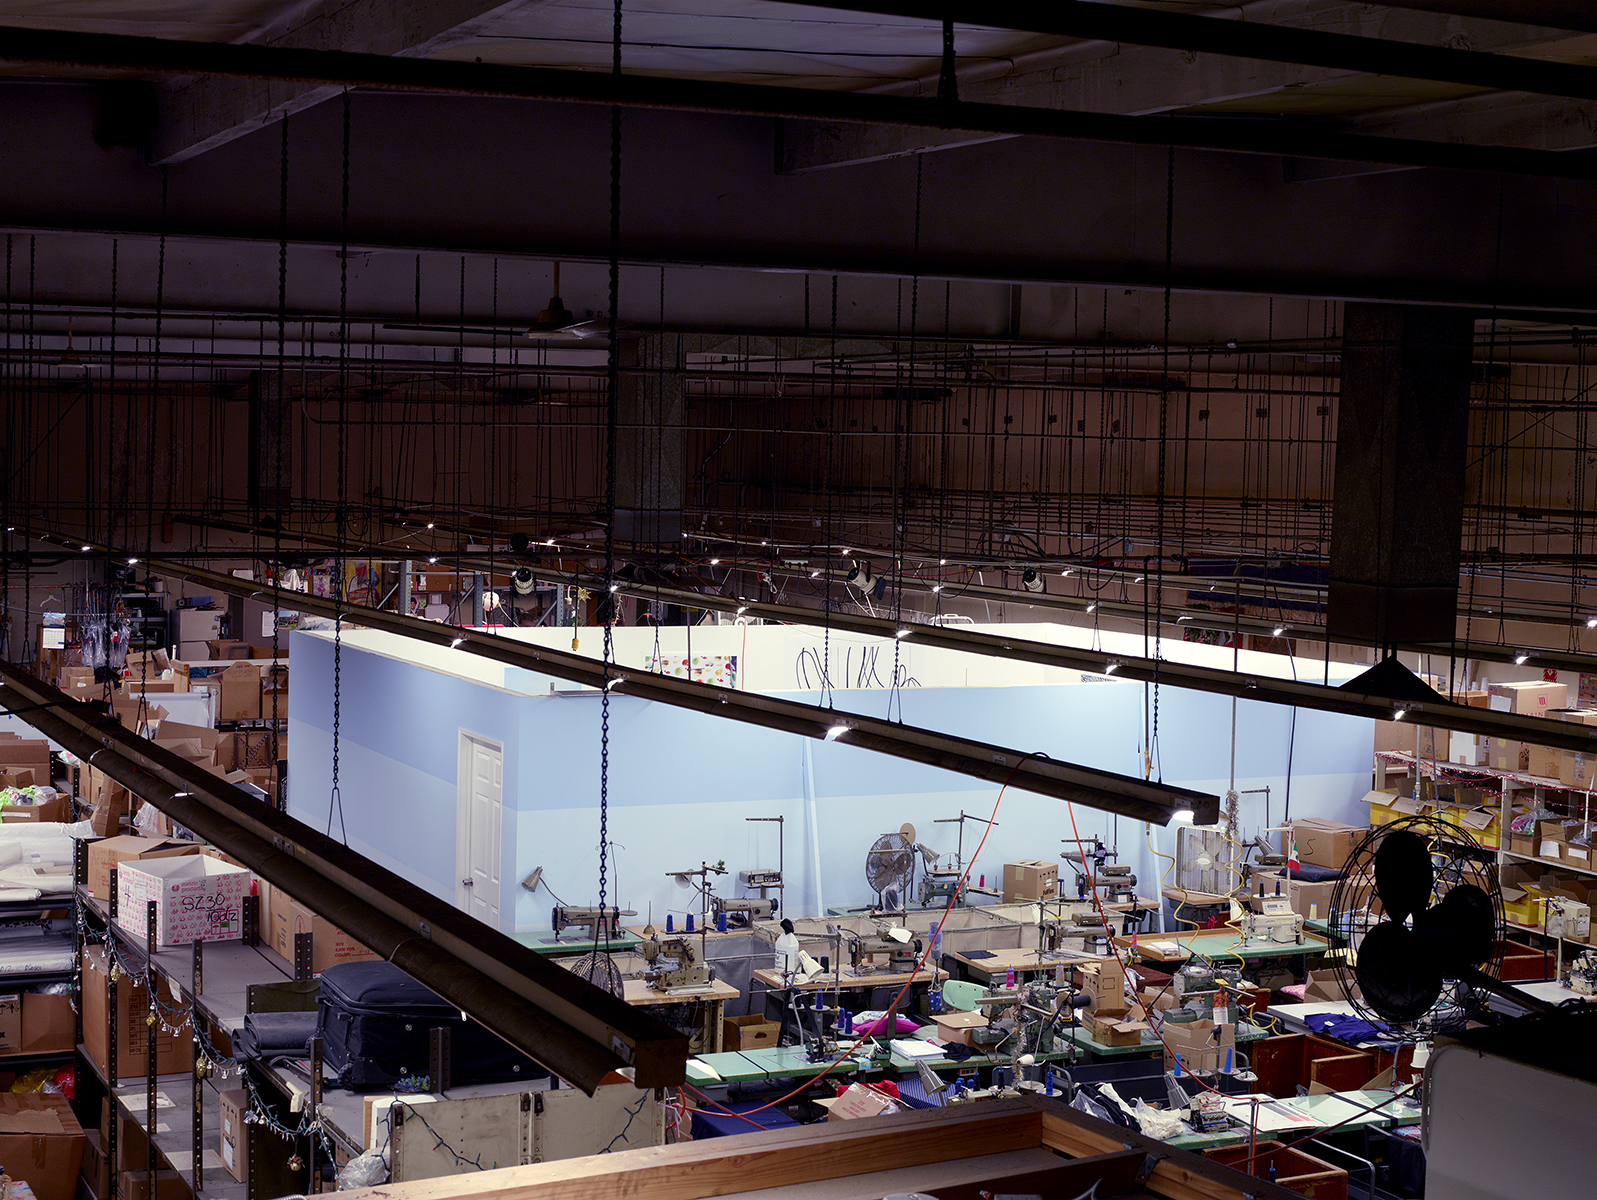 Bikini Factory/Studio (Elevated Perspective) , 2013 Archival pigment print 20 x 25 inches   ————